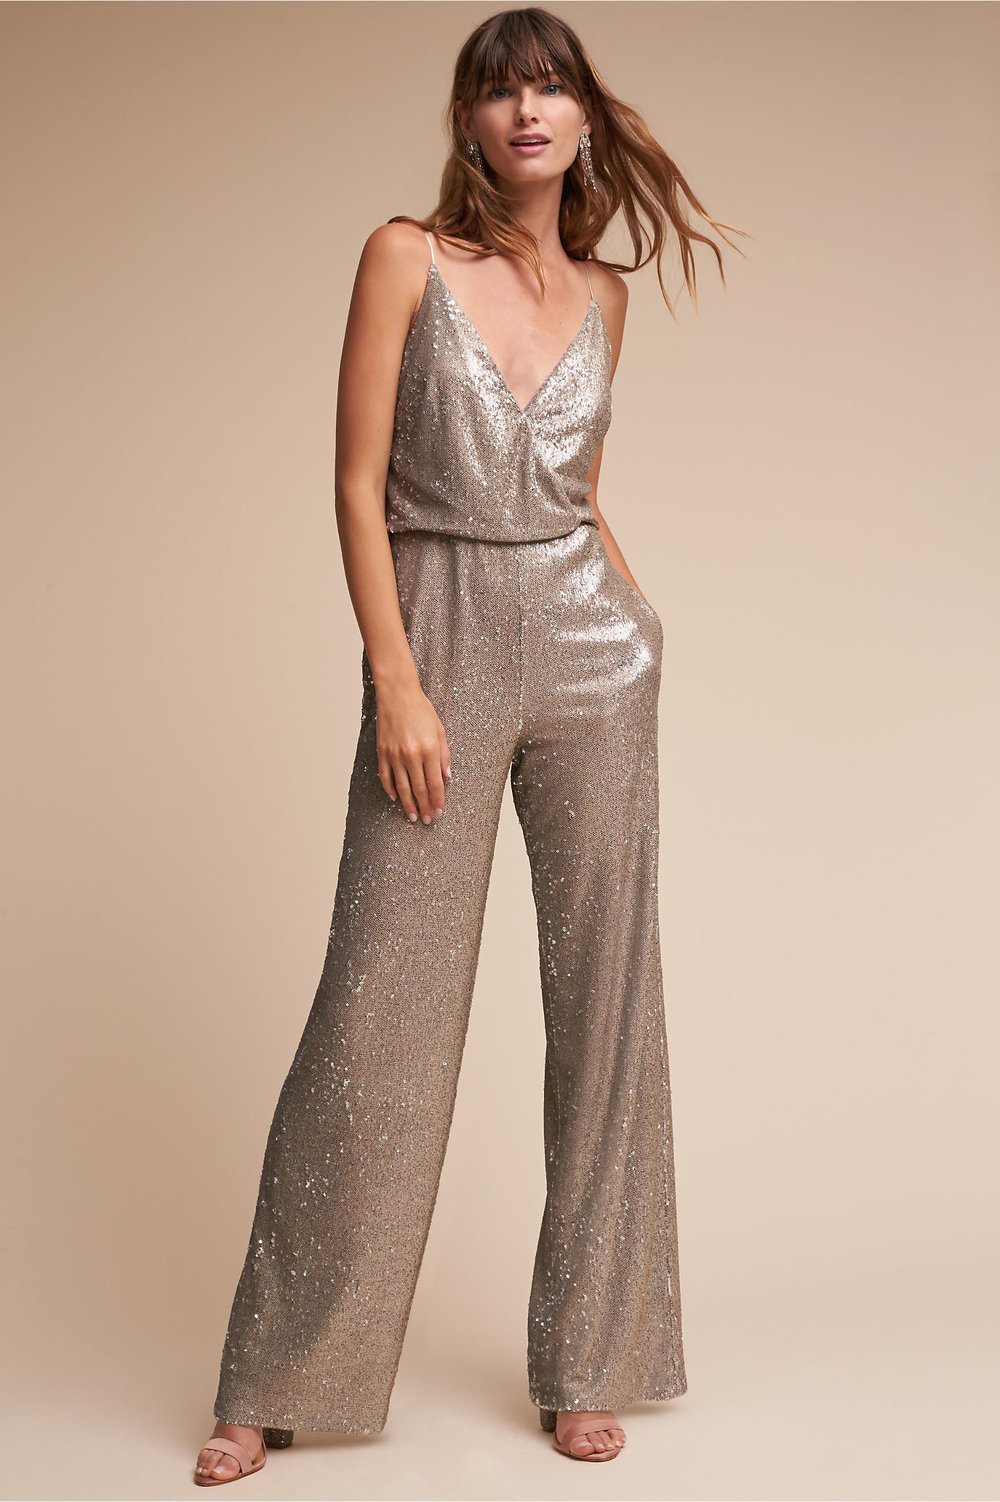 BHLDN La Lune Sequin Jumpsuit for brides who love a little sparkle!